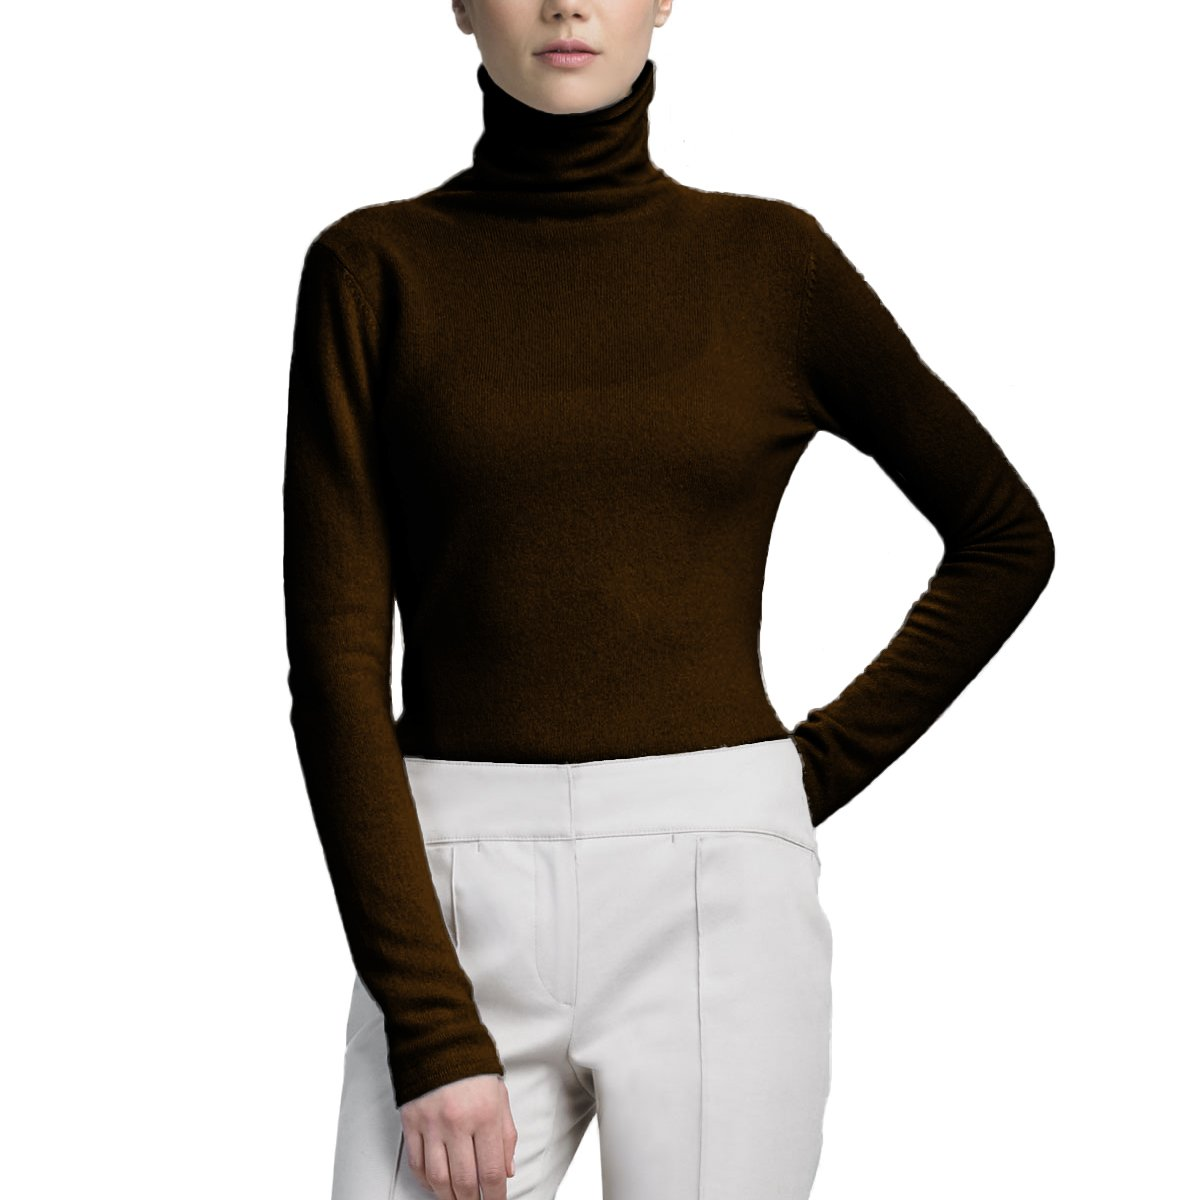 Parisbonbon Women's 100% Cashmere Turtleneck Tops Sweater Color Chocolate Size 1X by Parisbonbon (Image #1)